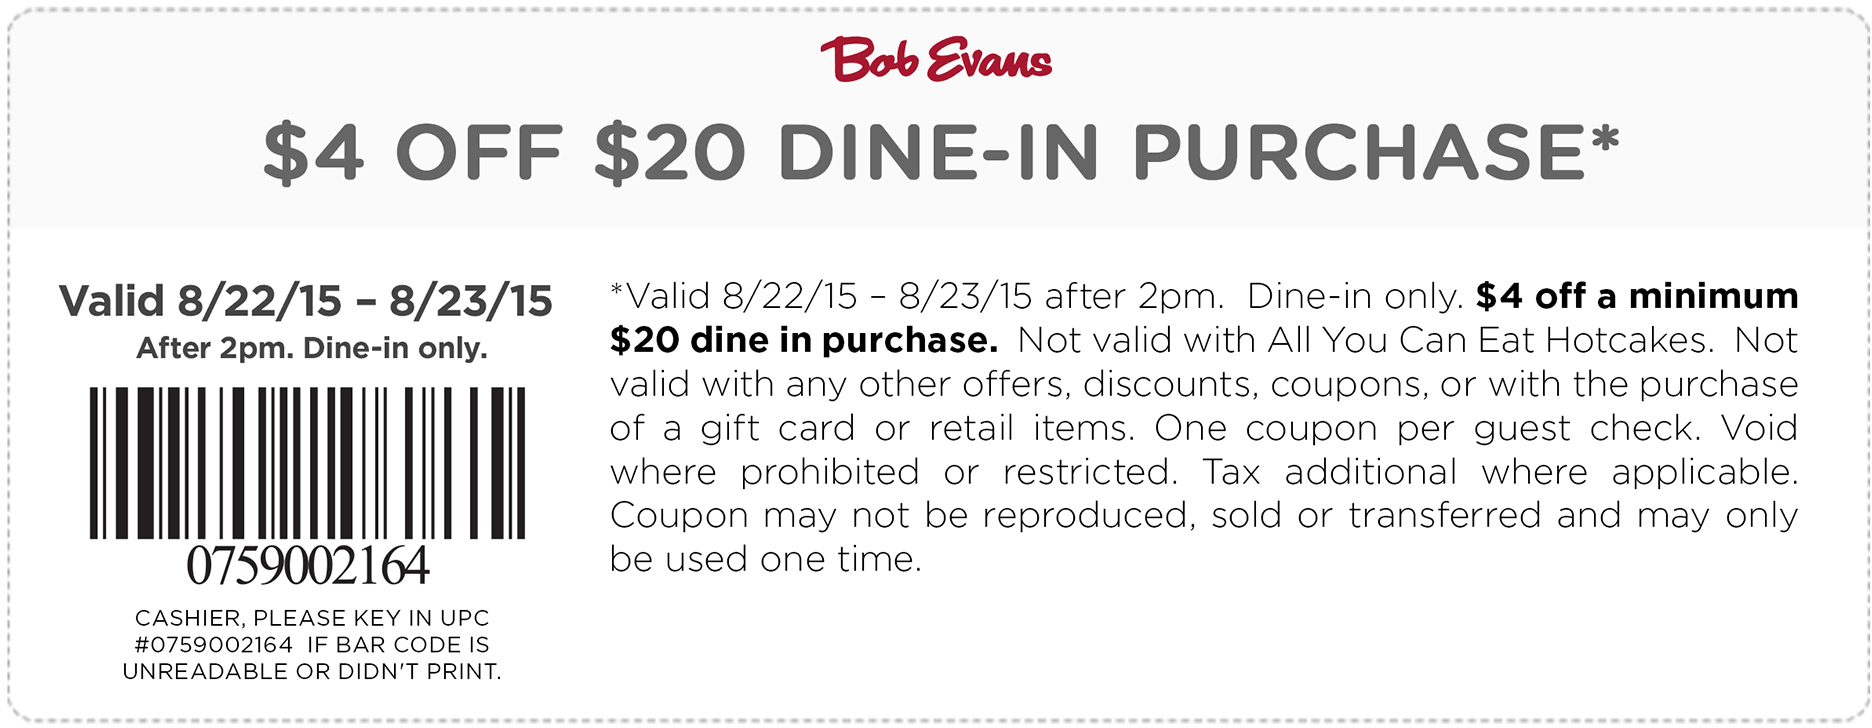 Bob Evans Coupon January 2017 $4 off $20 at Bob Evans restaurants